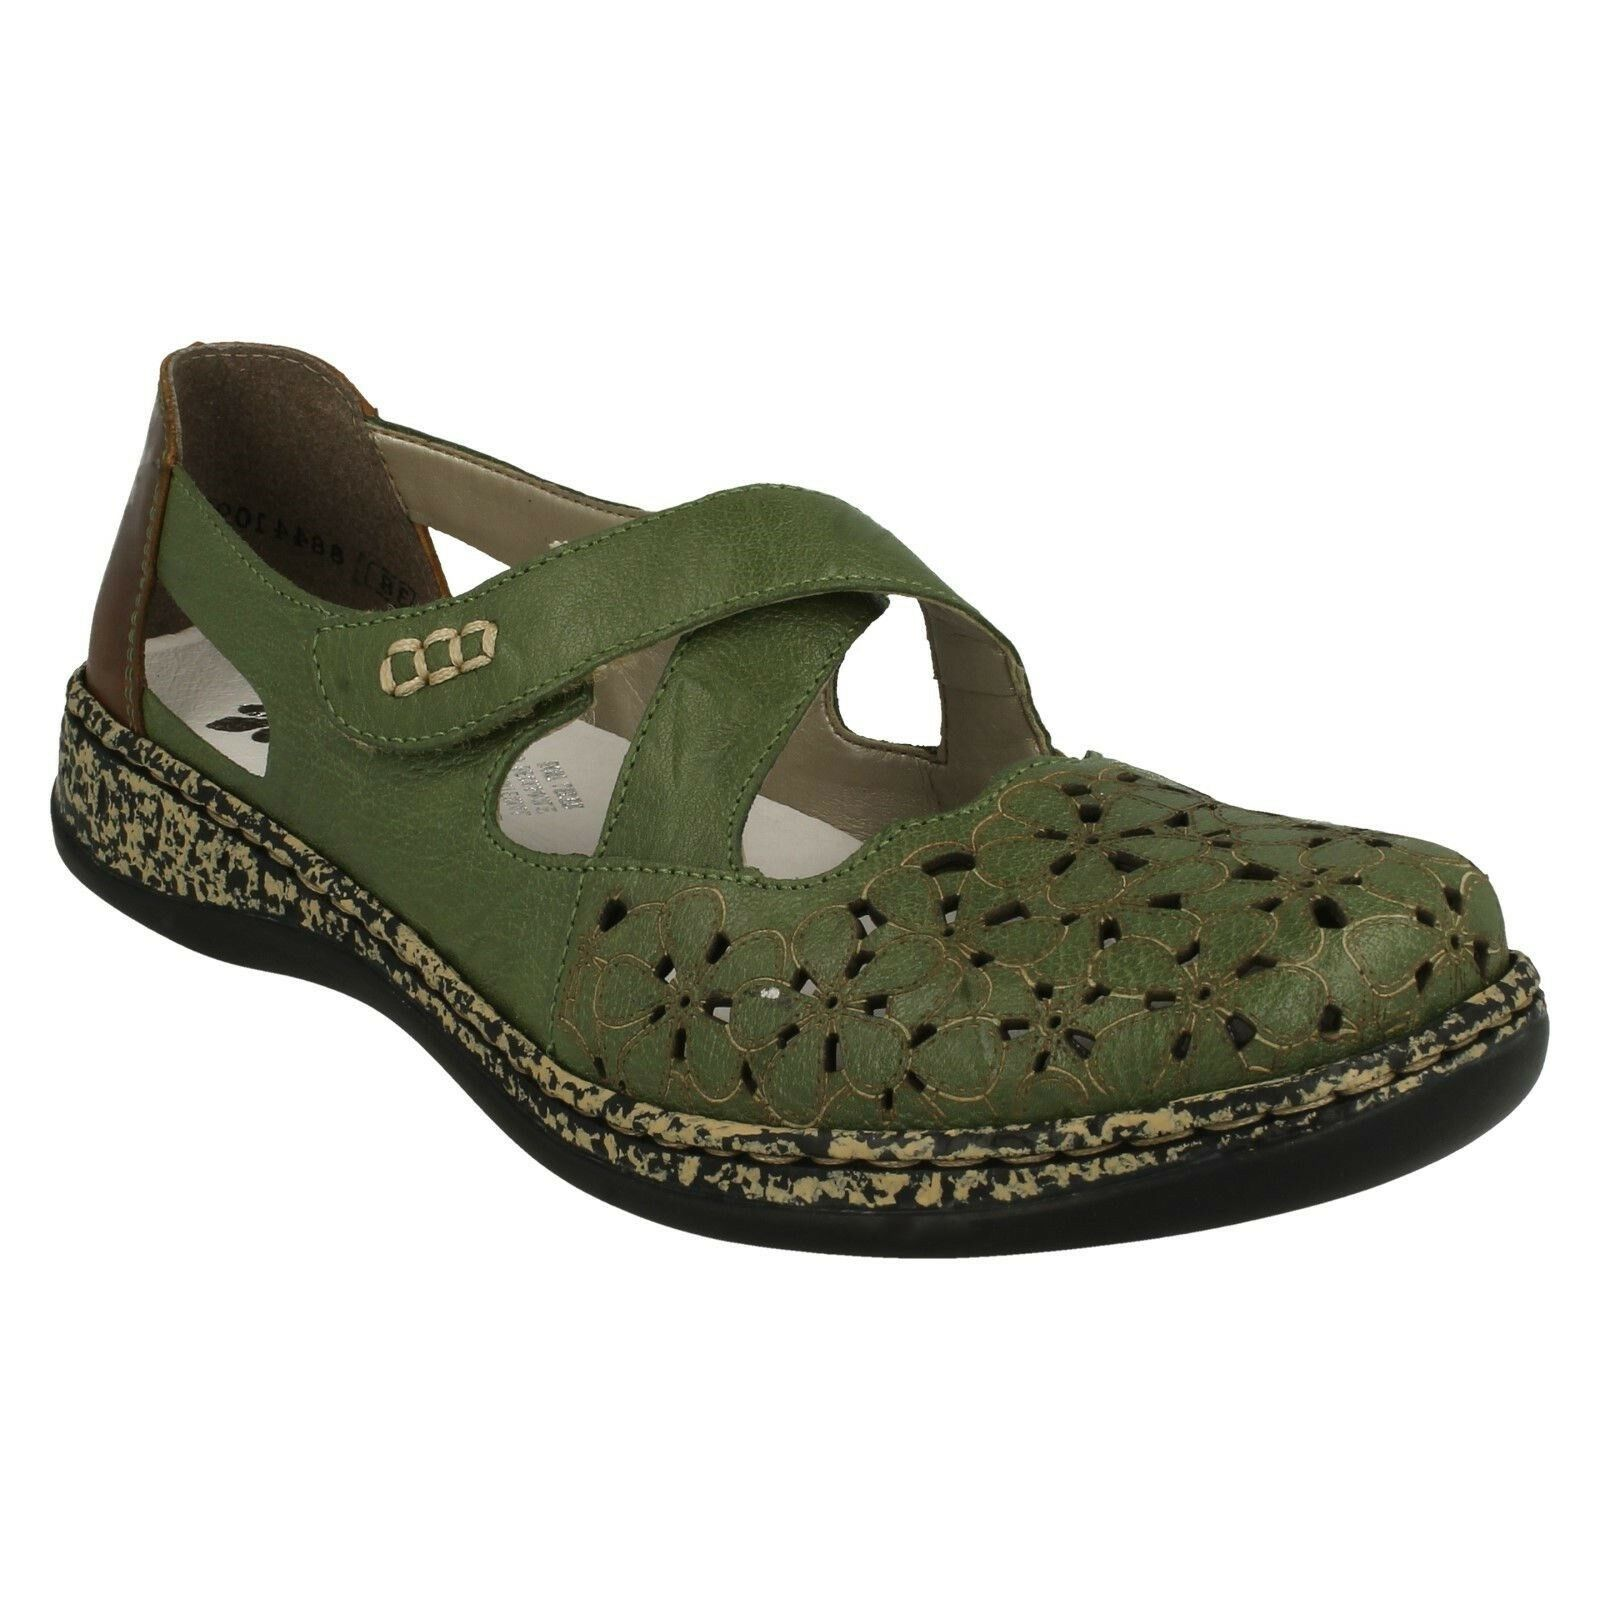 Da Donna Rieker 463H4 Mocassini Smart Casual Scarpe verde Taglia Estate